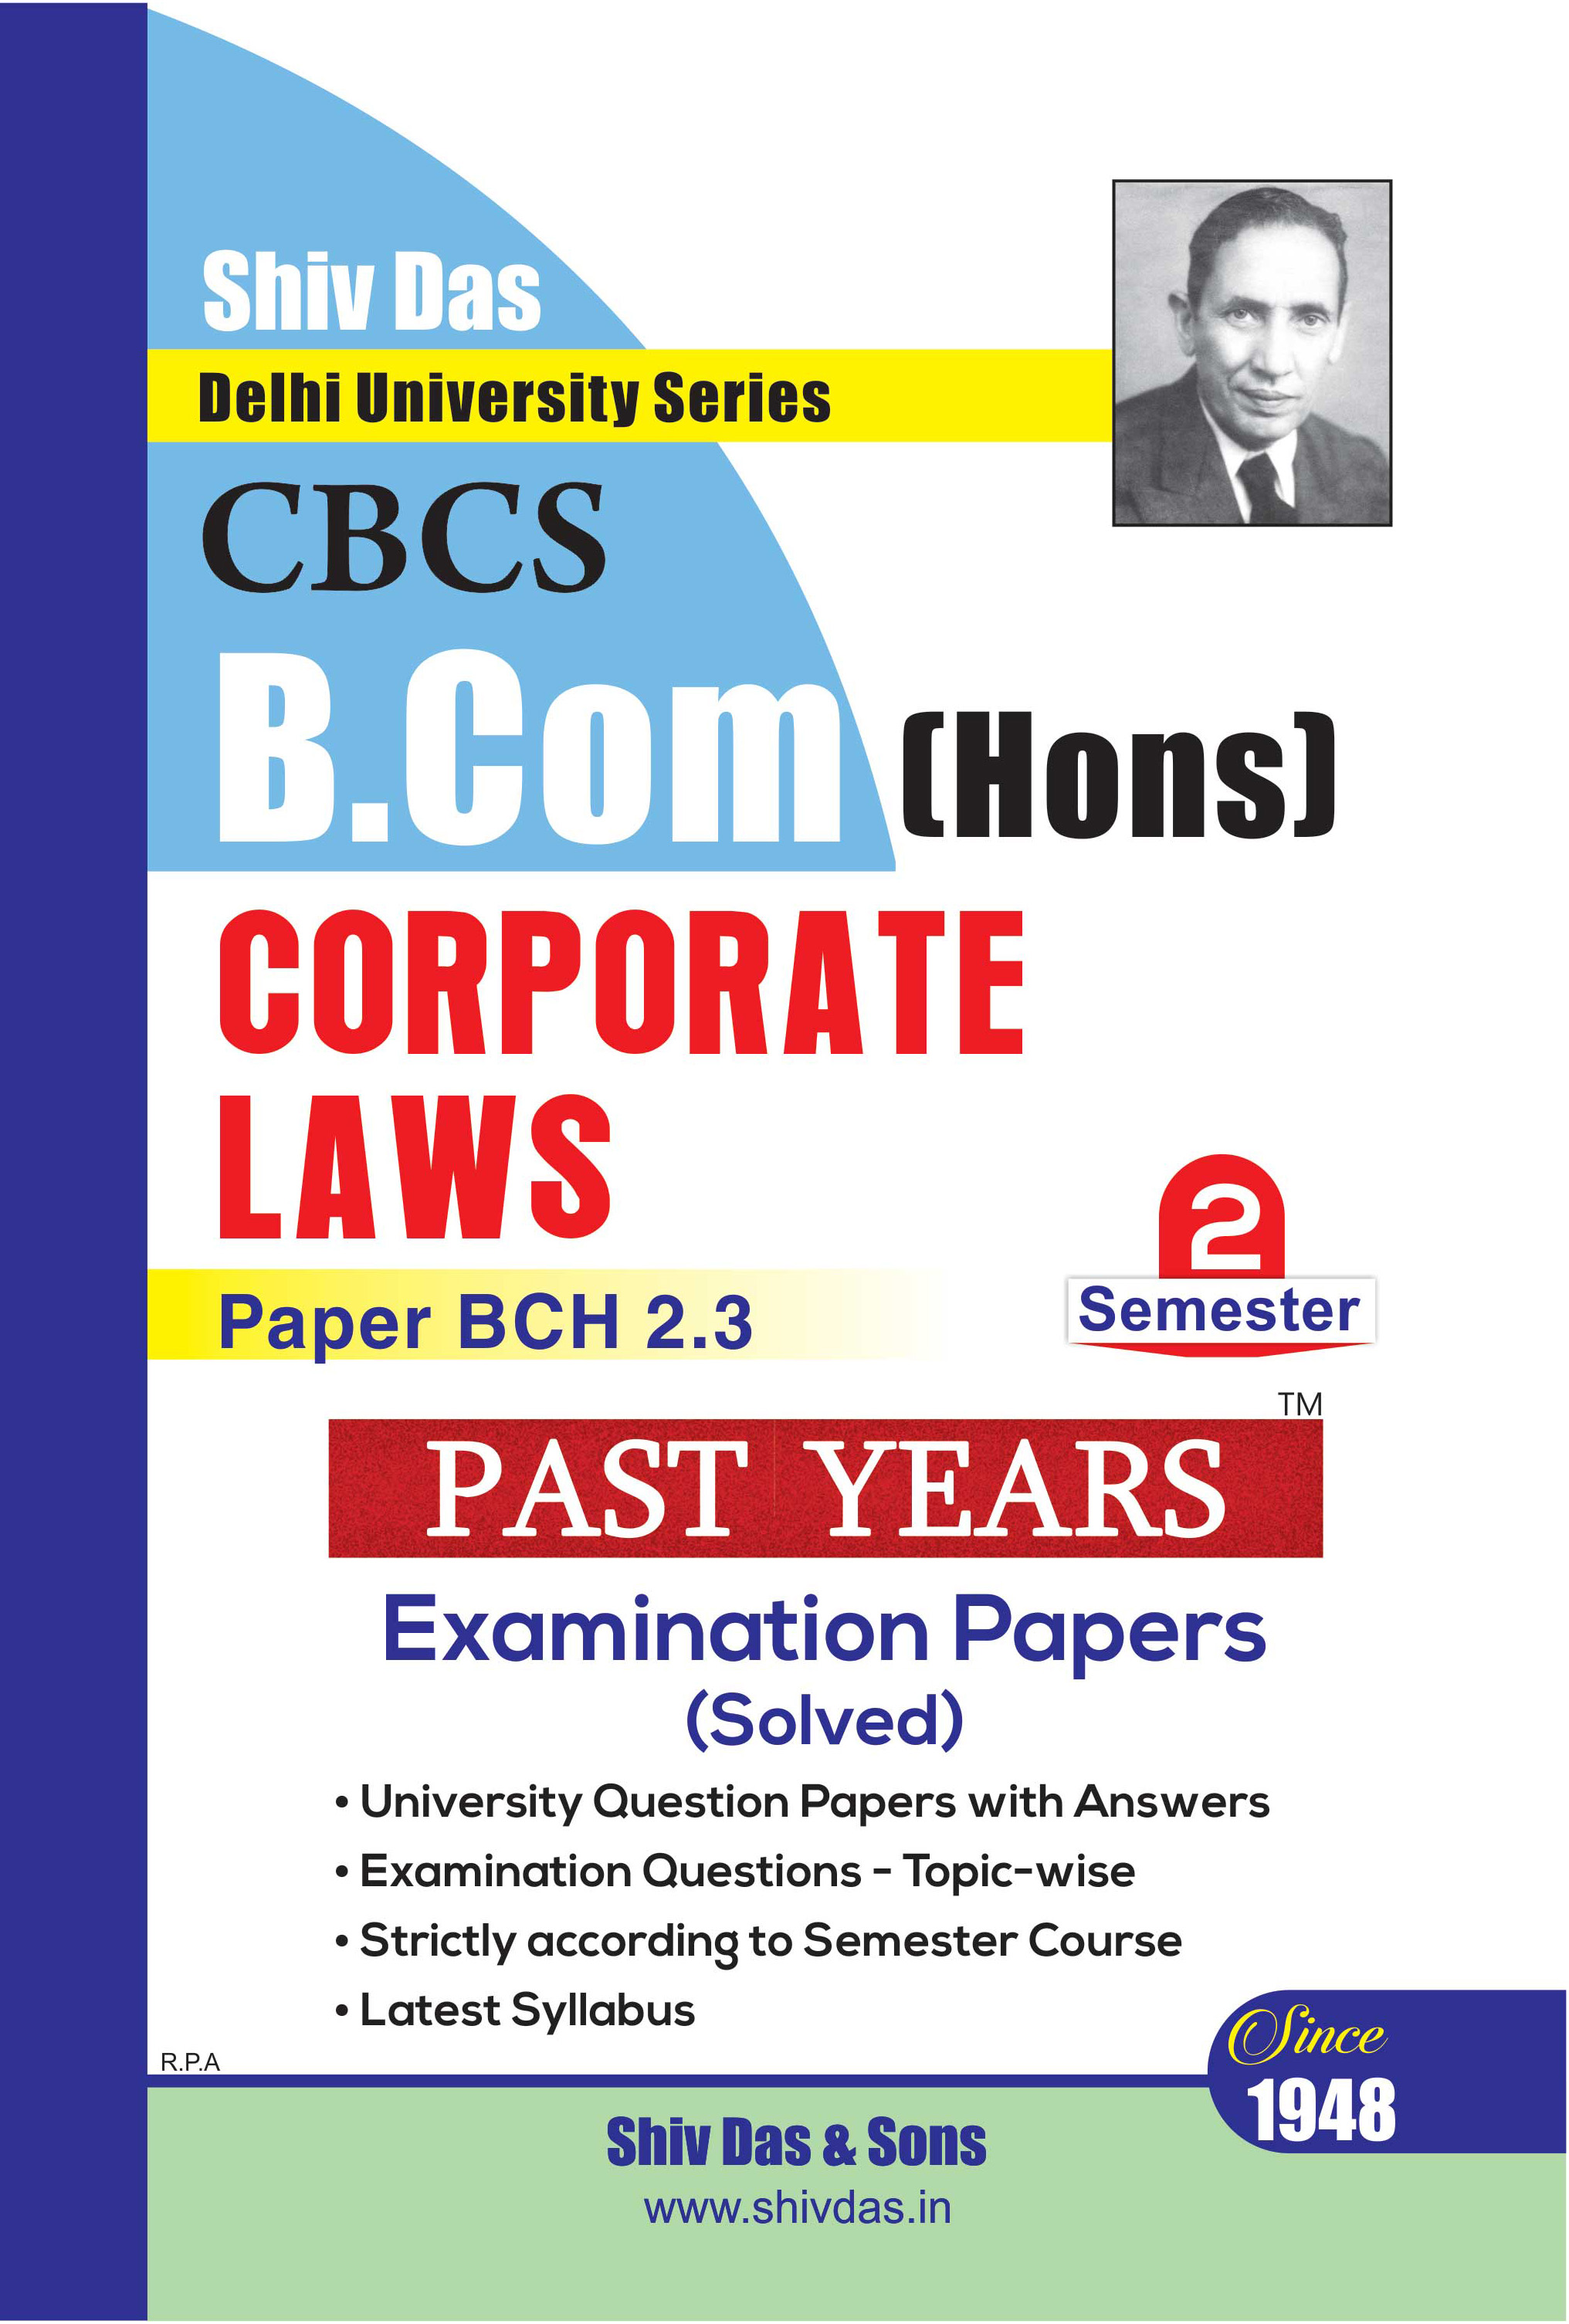 Corporate Laws for B.Com Hons Semester 2 for Delhi University by Shiv Das